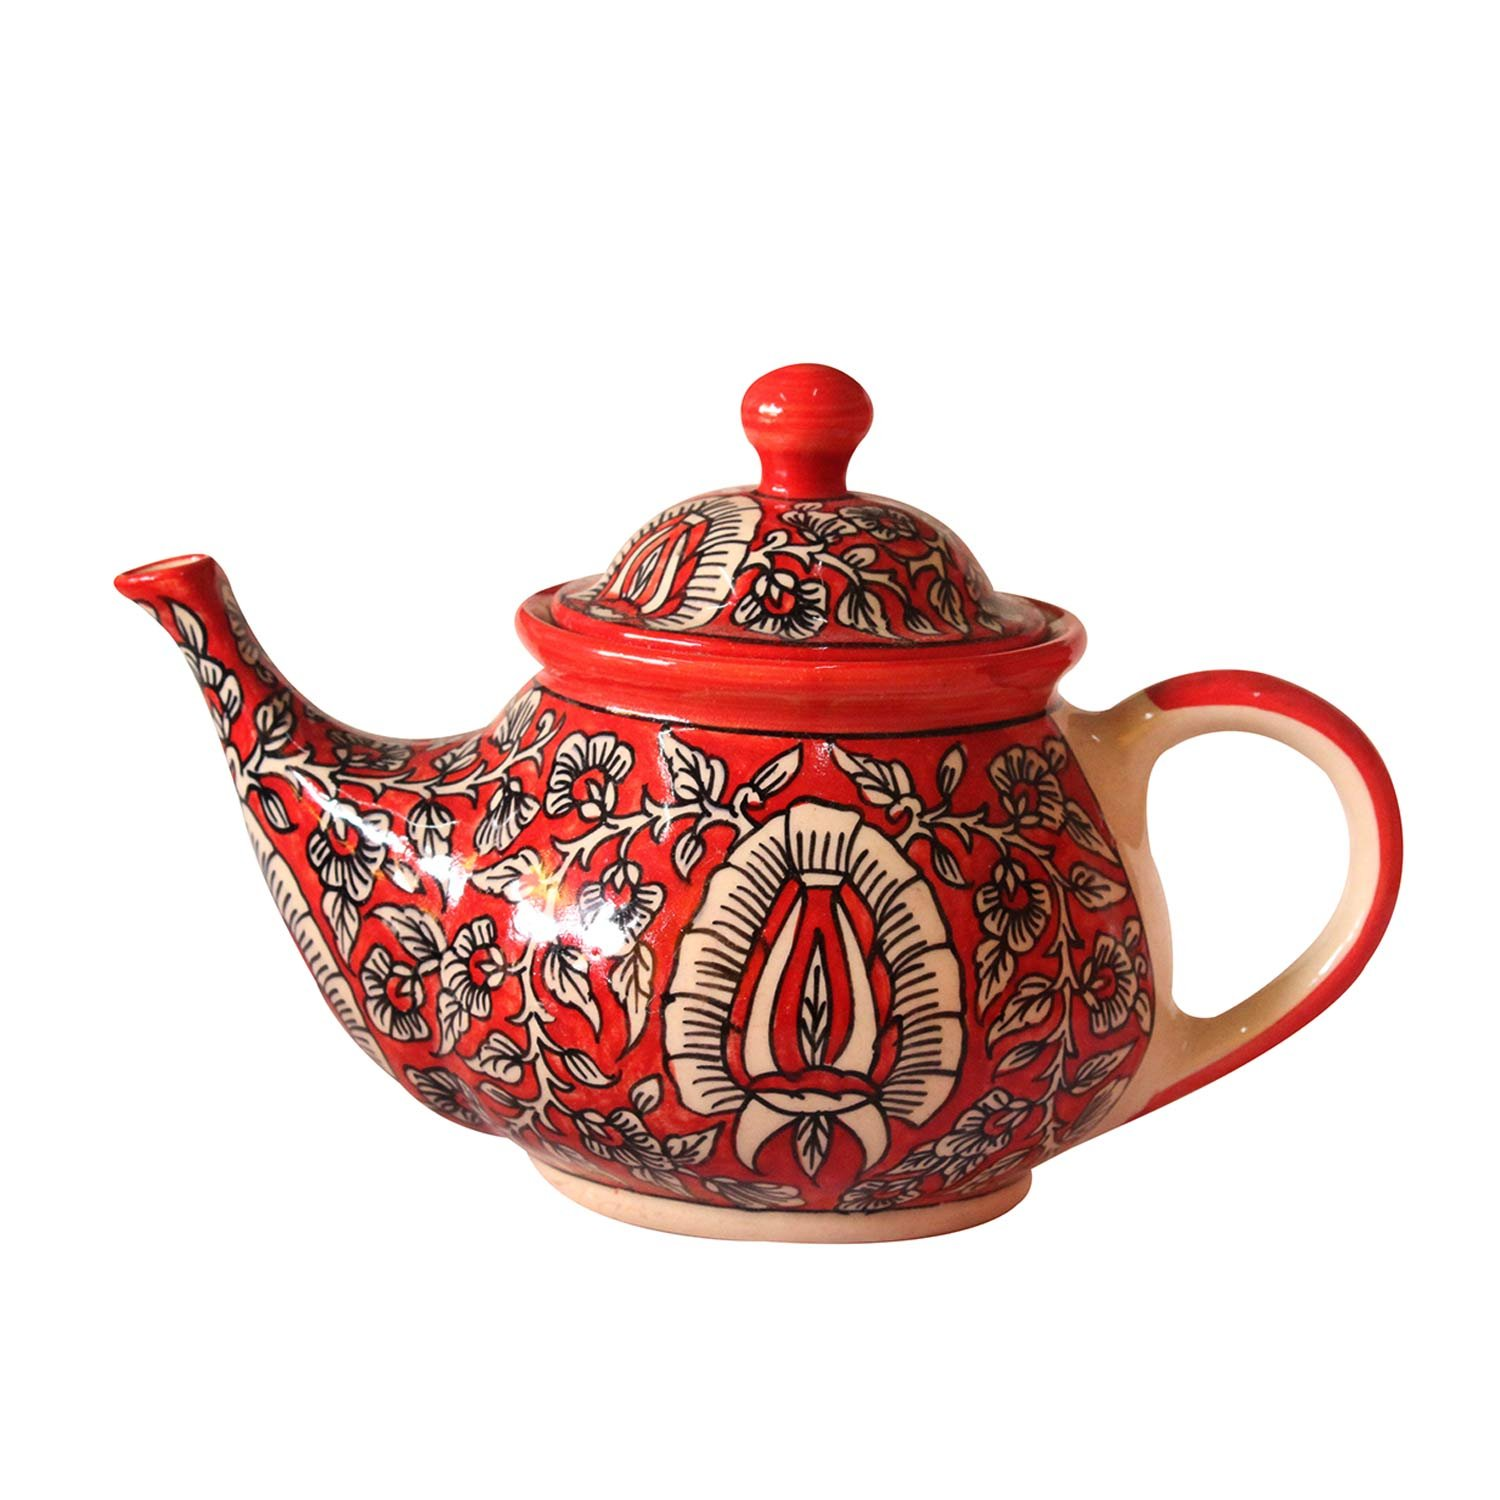 India Meets India Handmade Crafted Khurja Pottery Multicolor Ceramic Single Serving Kettle Or Teapot with Lid Use For Tea Serving, Coffee Serving, Hot Water Serving and Home/Kitchen Decoration Qty-1